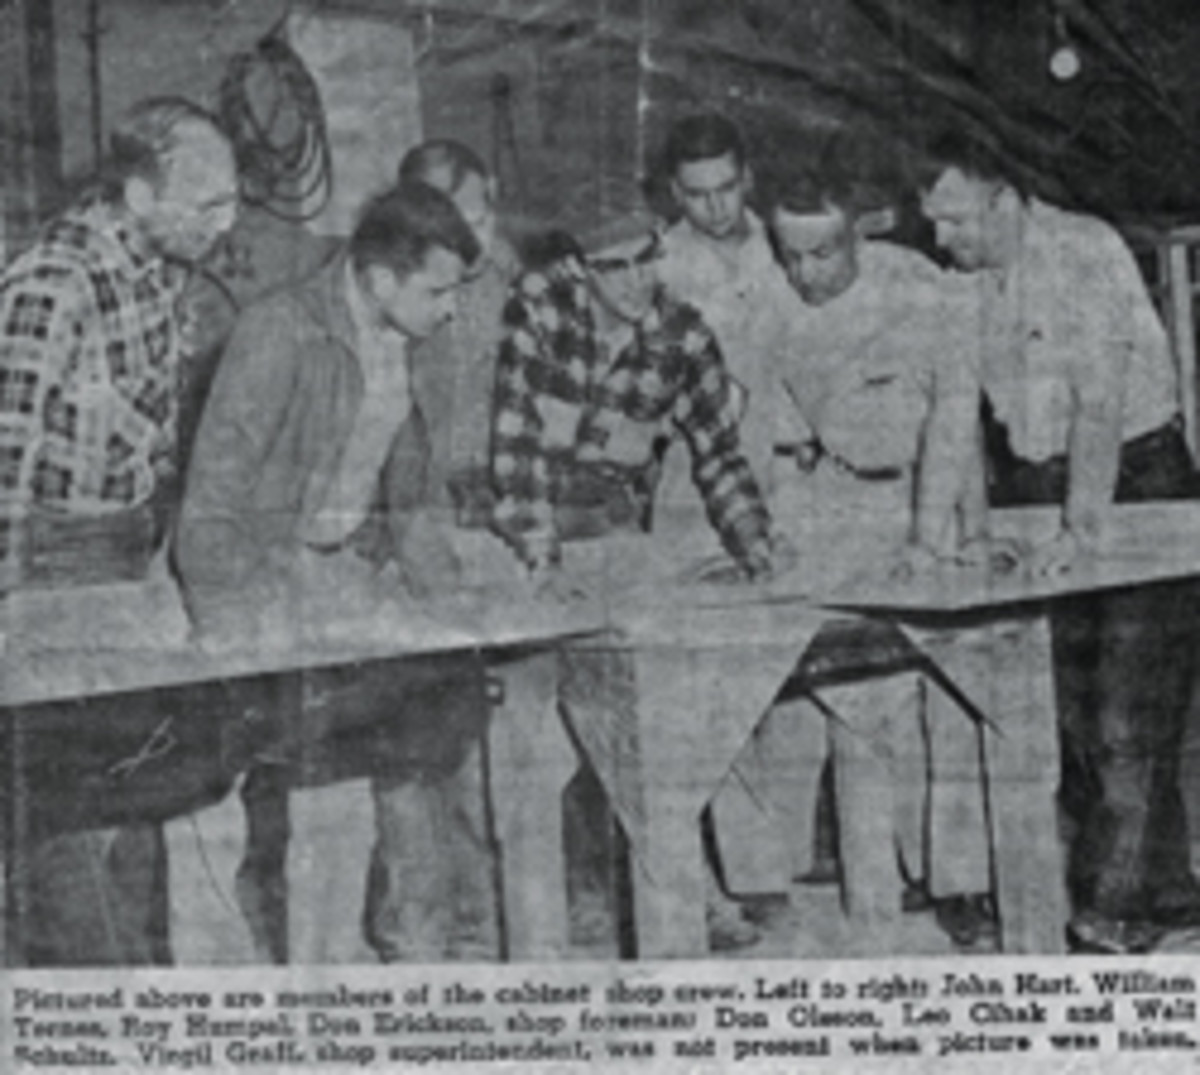 Don Erickson and his crew from a 1961 newspaper photo.